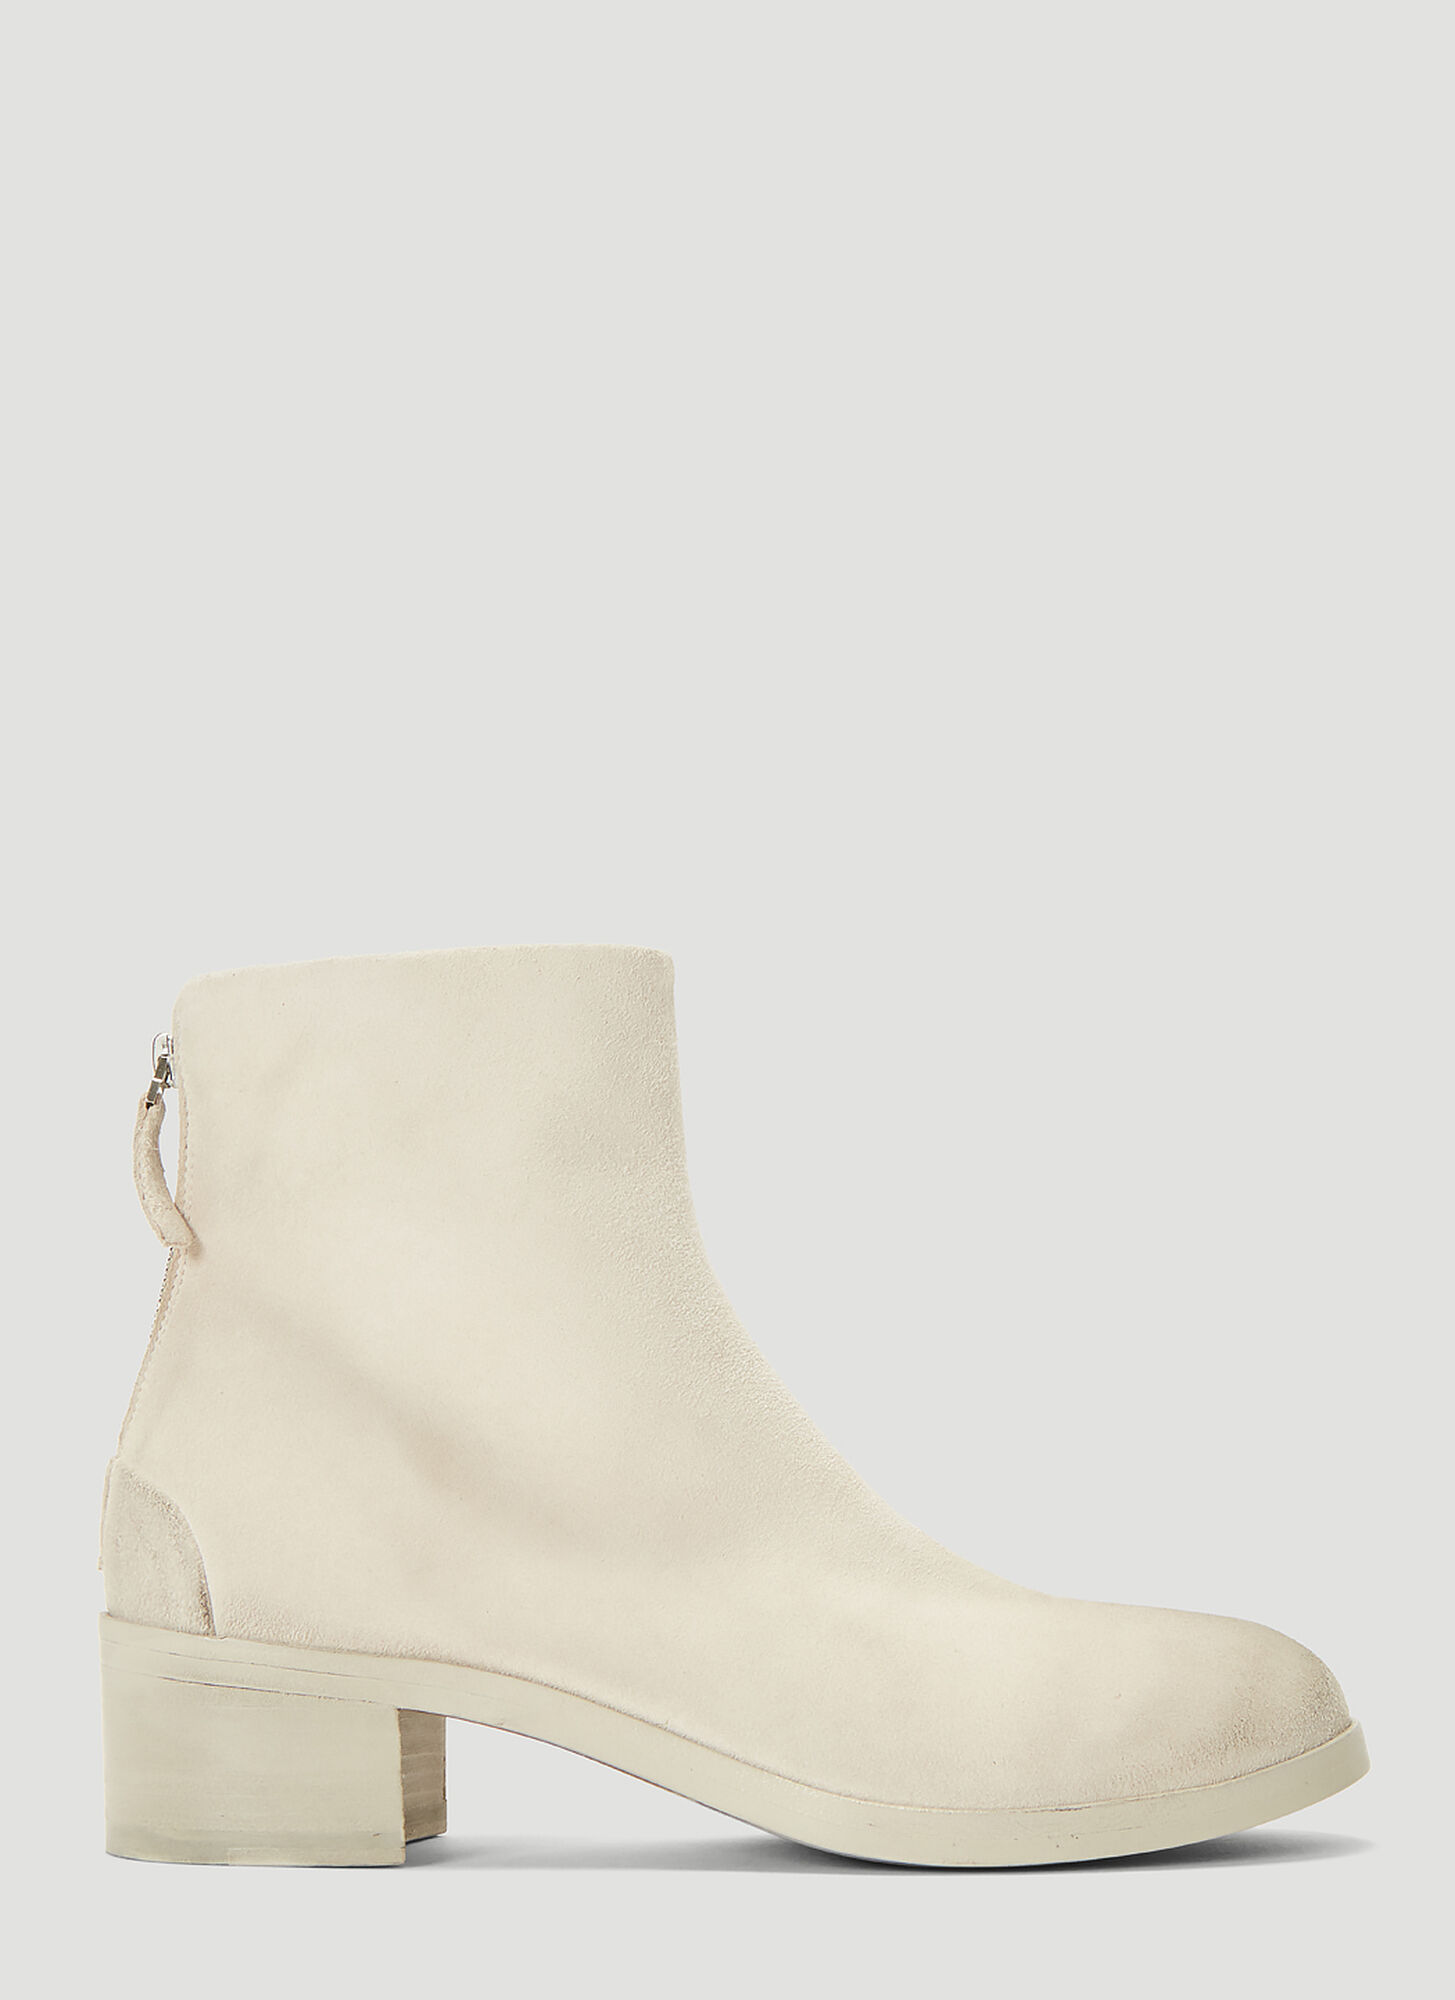 Marsell Listo Boots in White